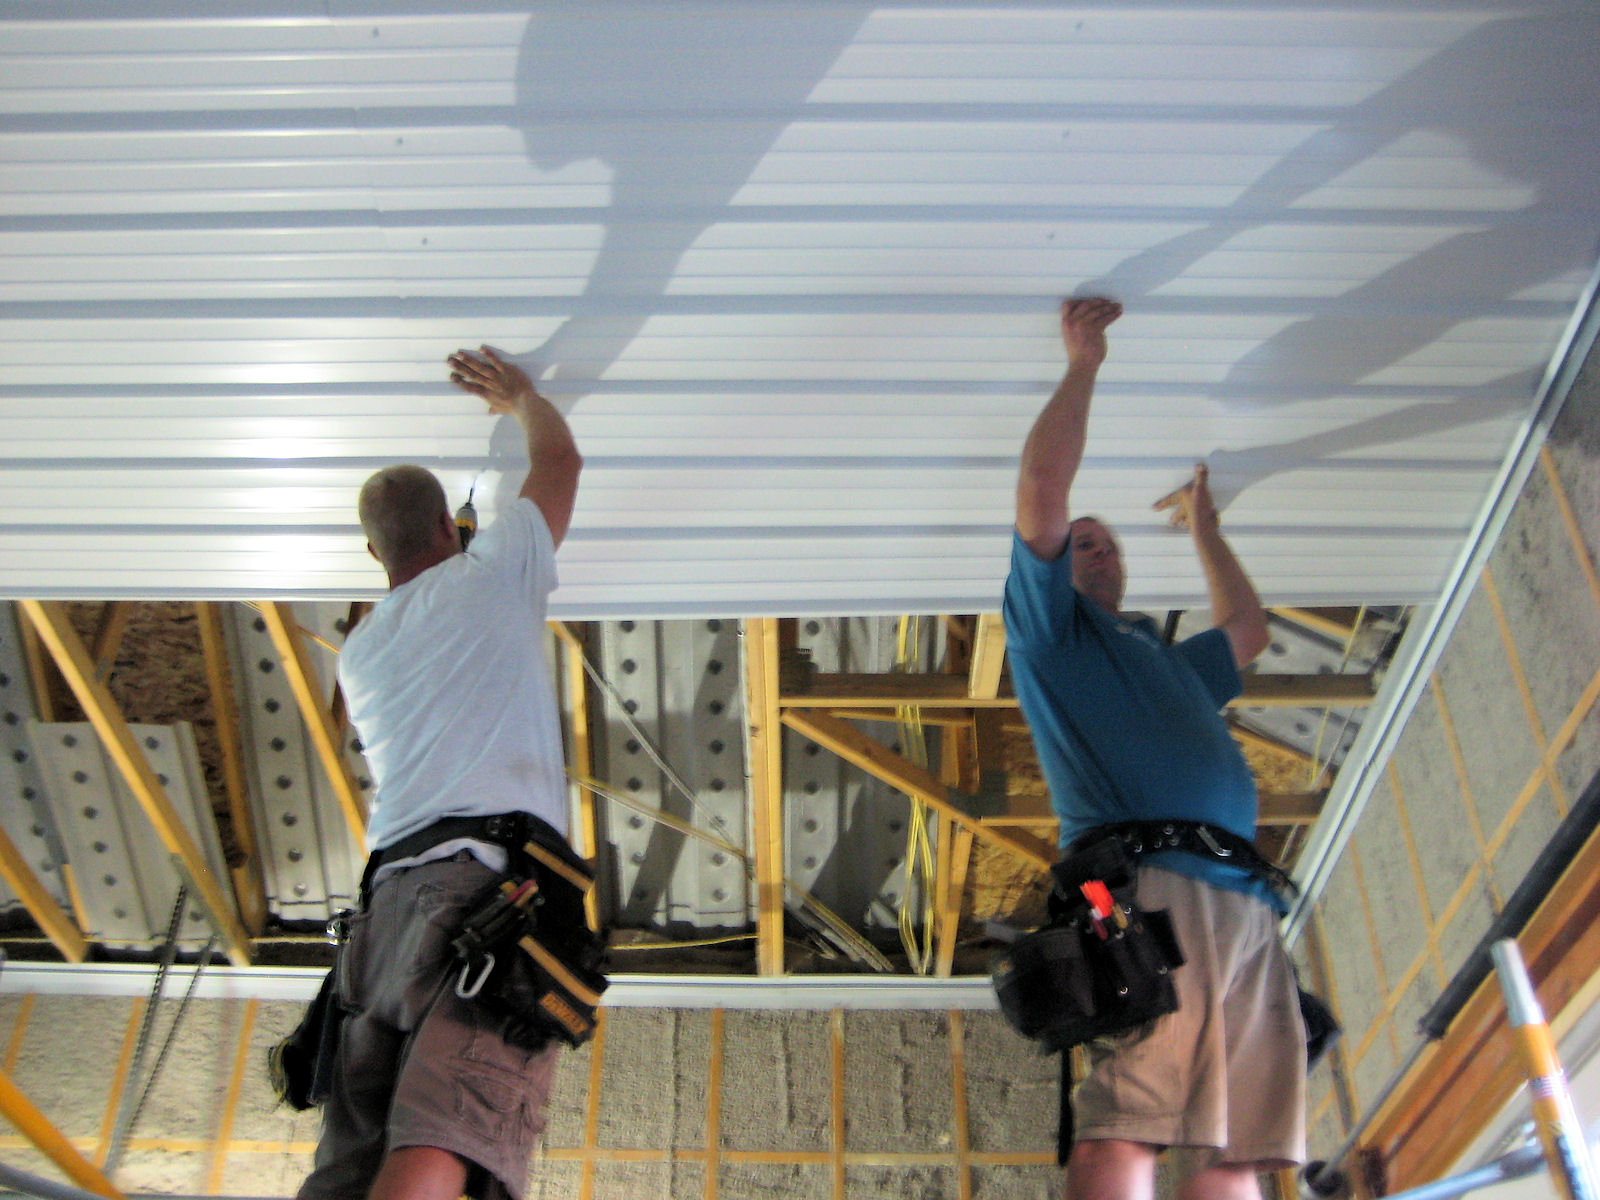 How To Finish A Garage on how to finish basement, how to paint concrete floors, how to organize bins in garage, how to organize your garage, how to finish an attic, how to put your garage in order, how to organize garage space, how to finish drywall,